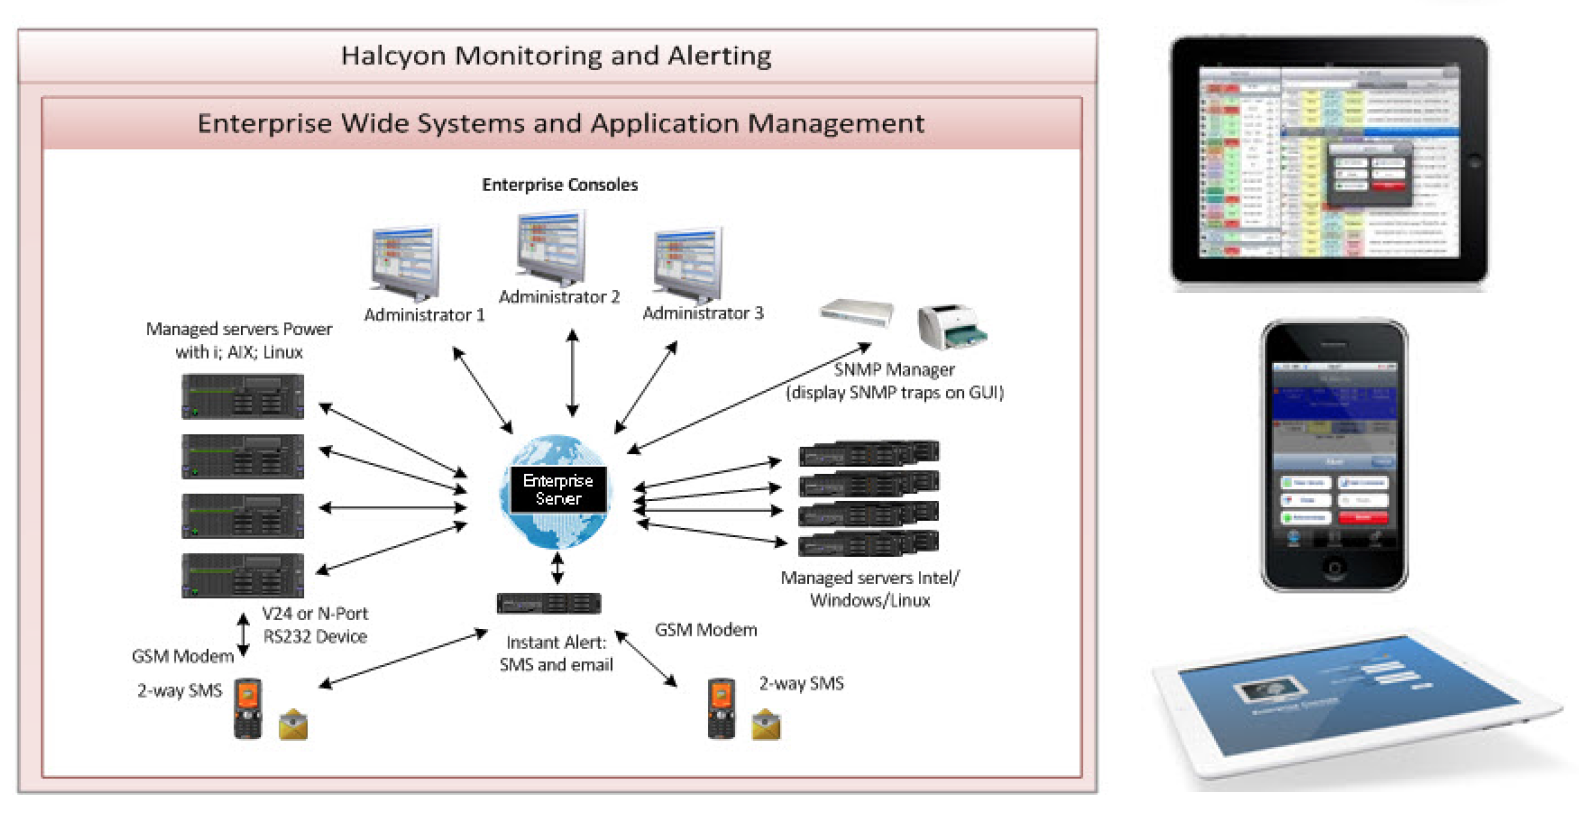 Enterprise Wide System and Application Monitoring with Remote Access Options